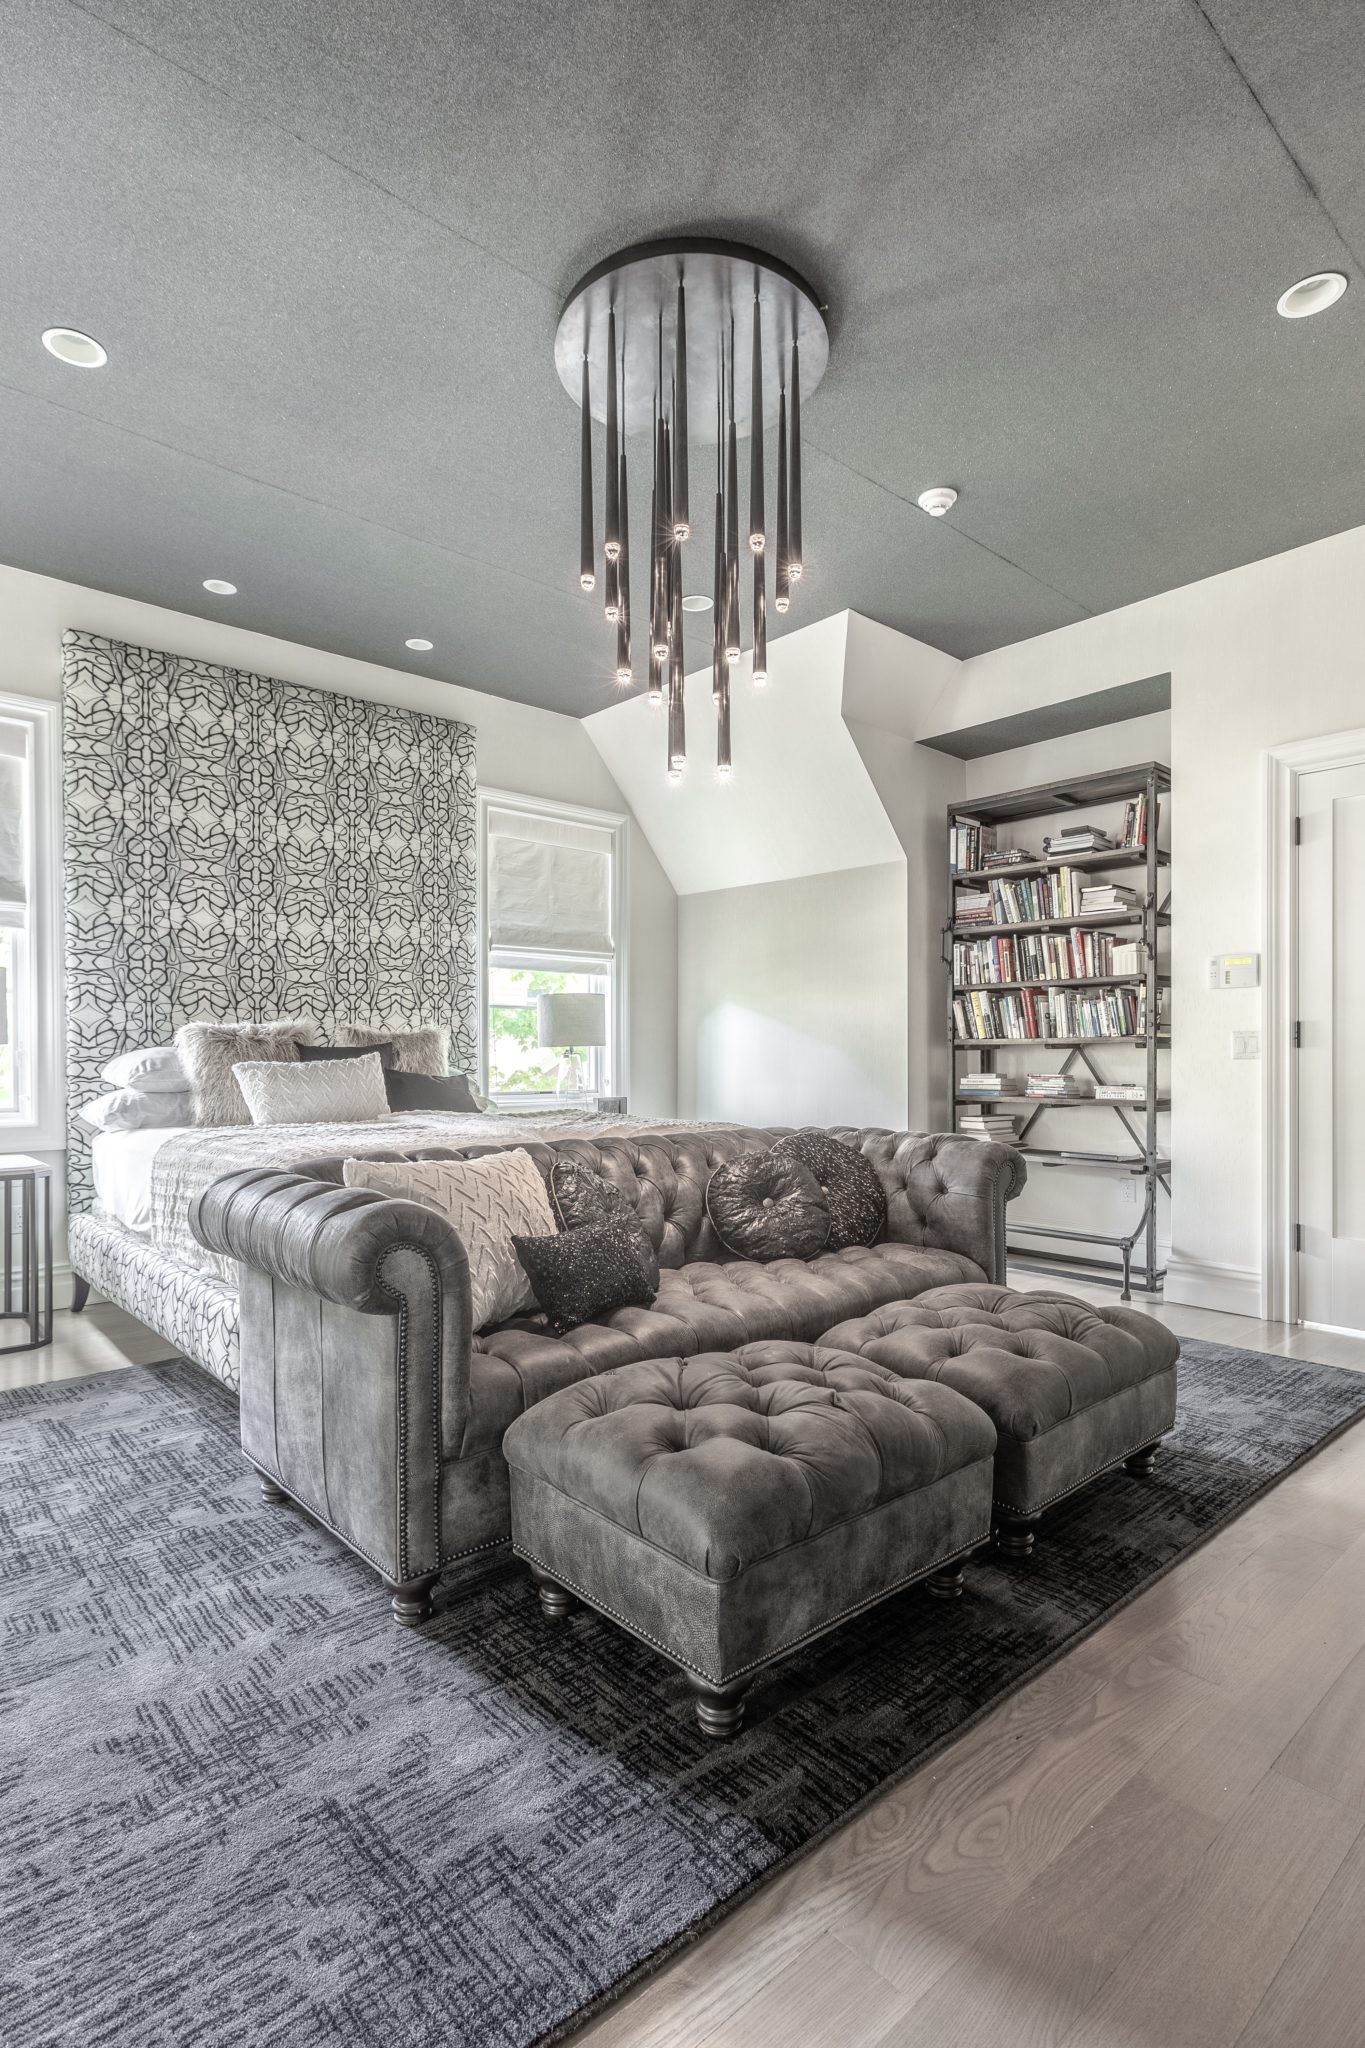 A plush tufted gray couch reposes at the end of the bed with graphic headboard. by Shelley Cekirge Interiors